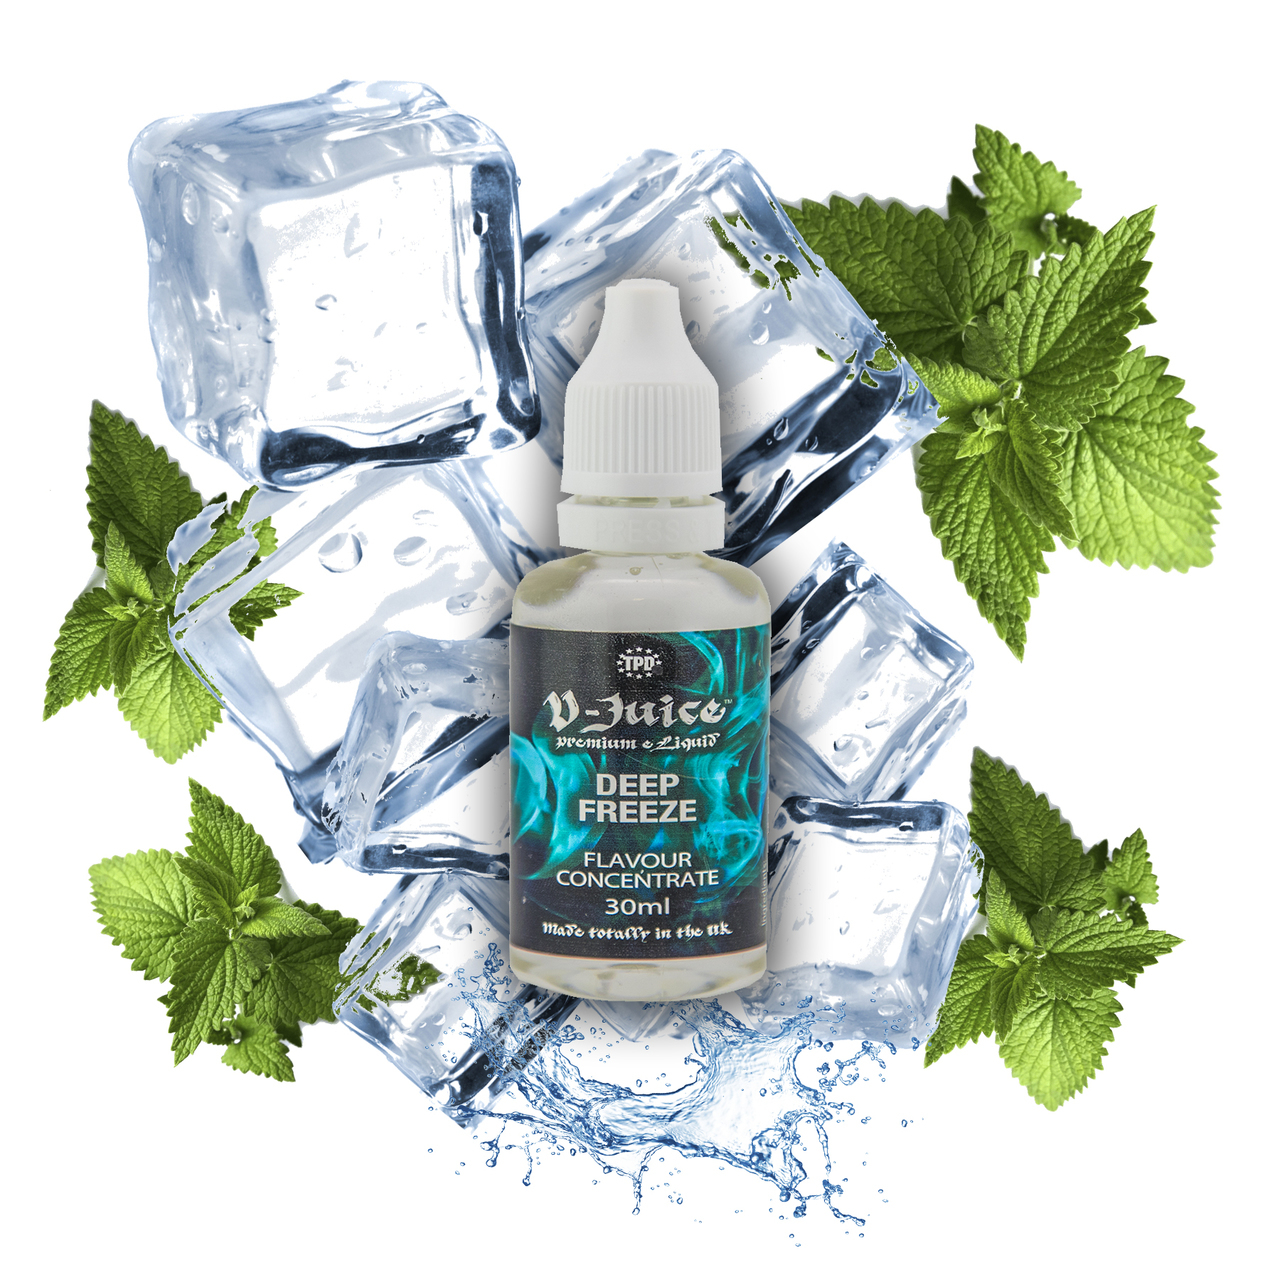 Deep Freeze Flavour Concentrate by V-Juice